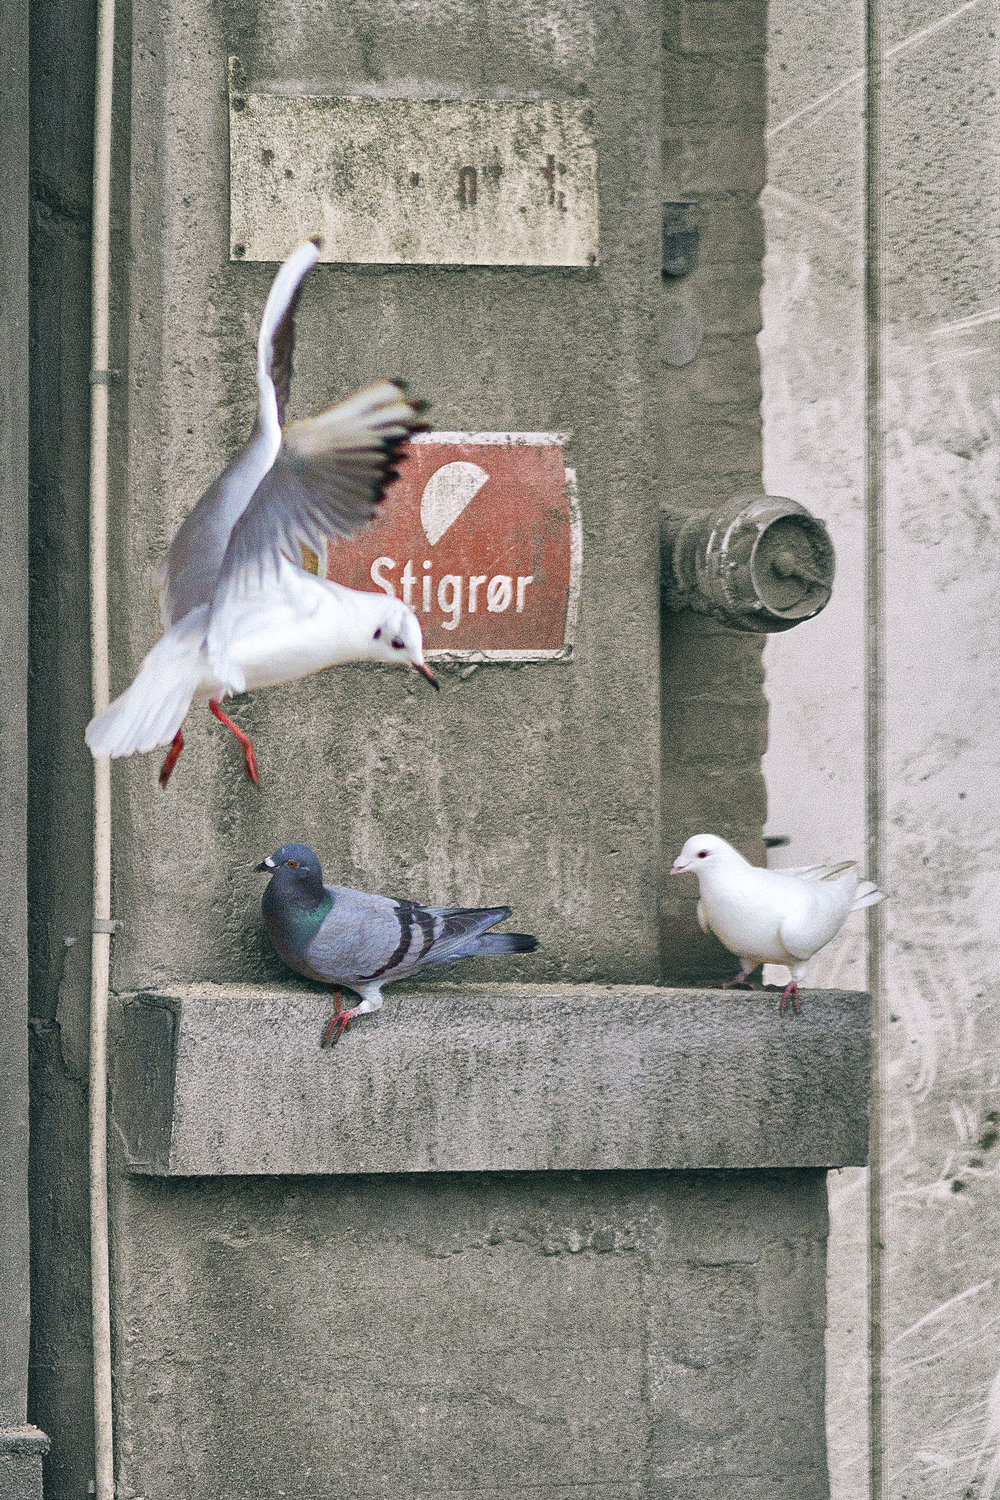 Sorry no room Read about The Pigeons/doves Comments